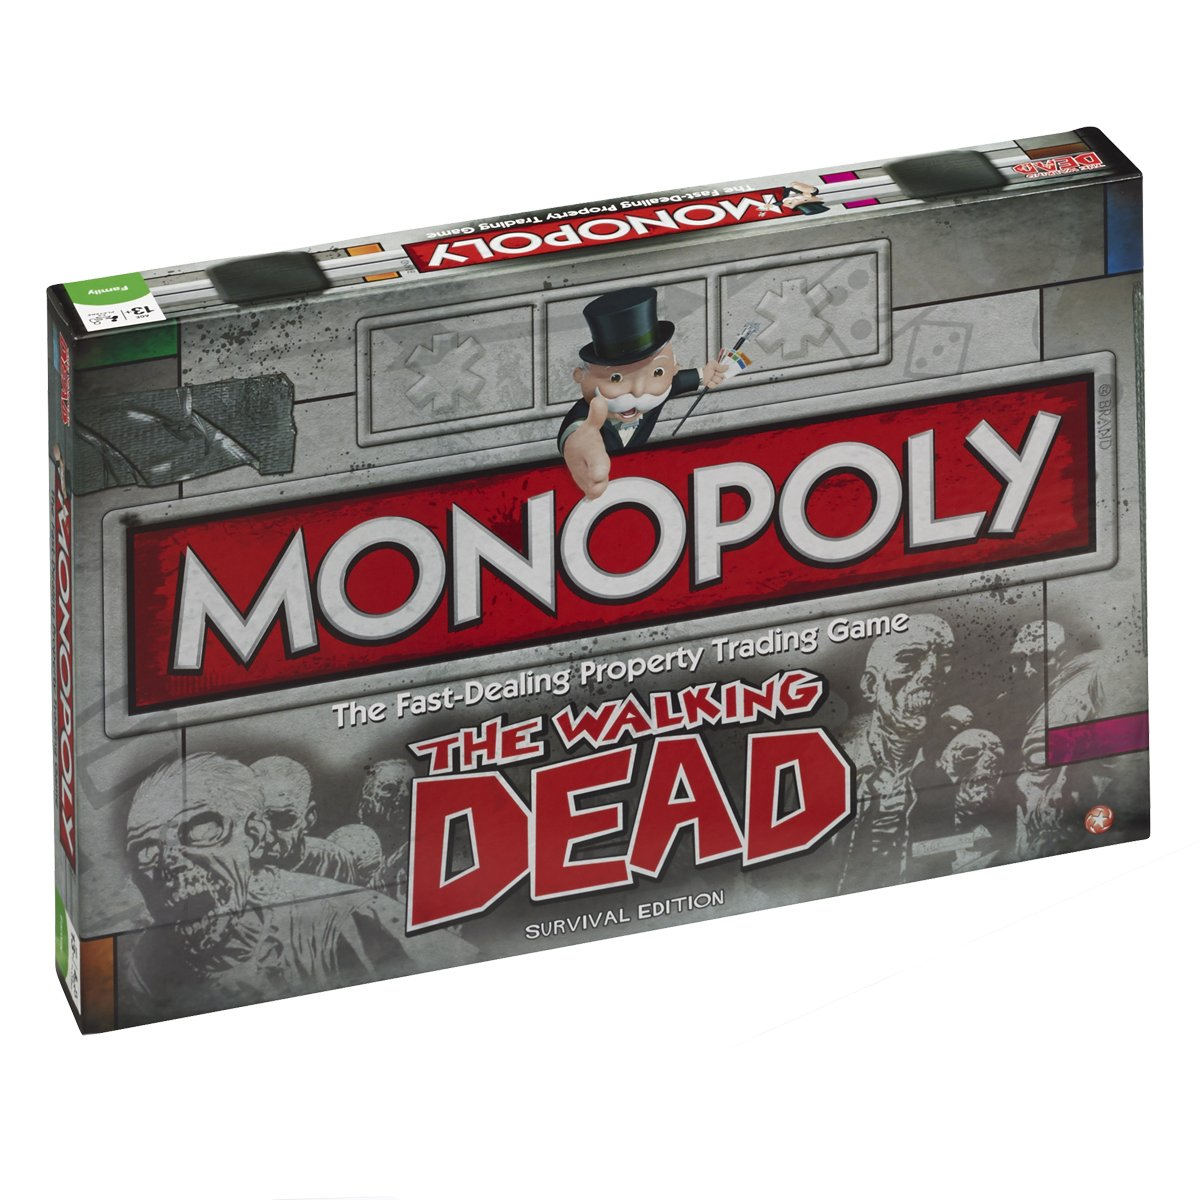 THE WALKING DEAD MONOPOLY SURVIVAL EDITION (UK VERSION)